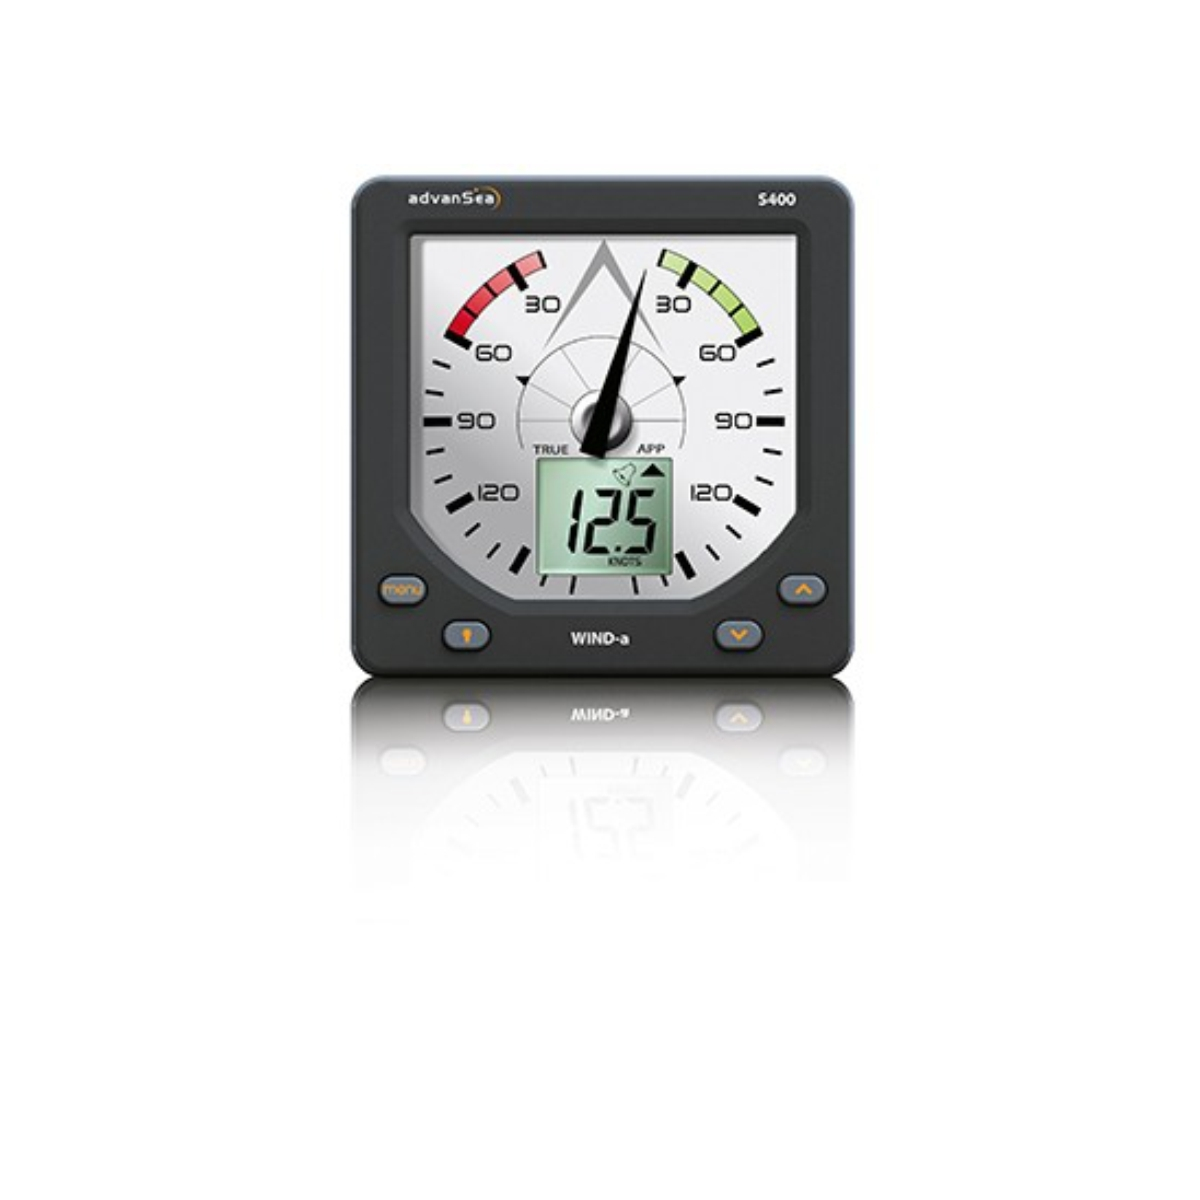 WIND DIRECTION INDICATOR WIND-A S400